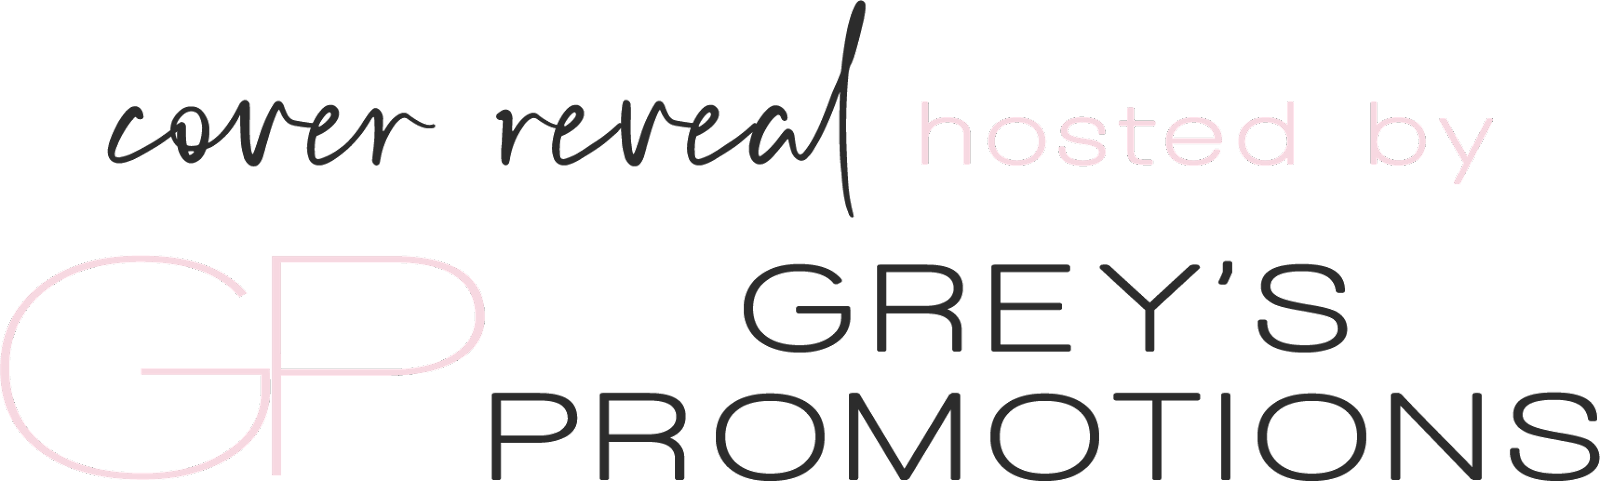 Cover Reveal hosted by Grey's Promotions